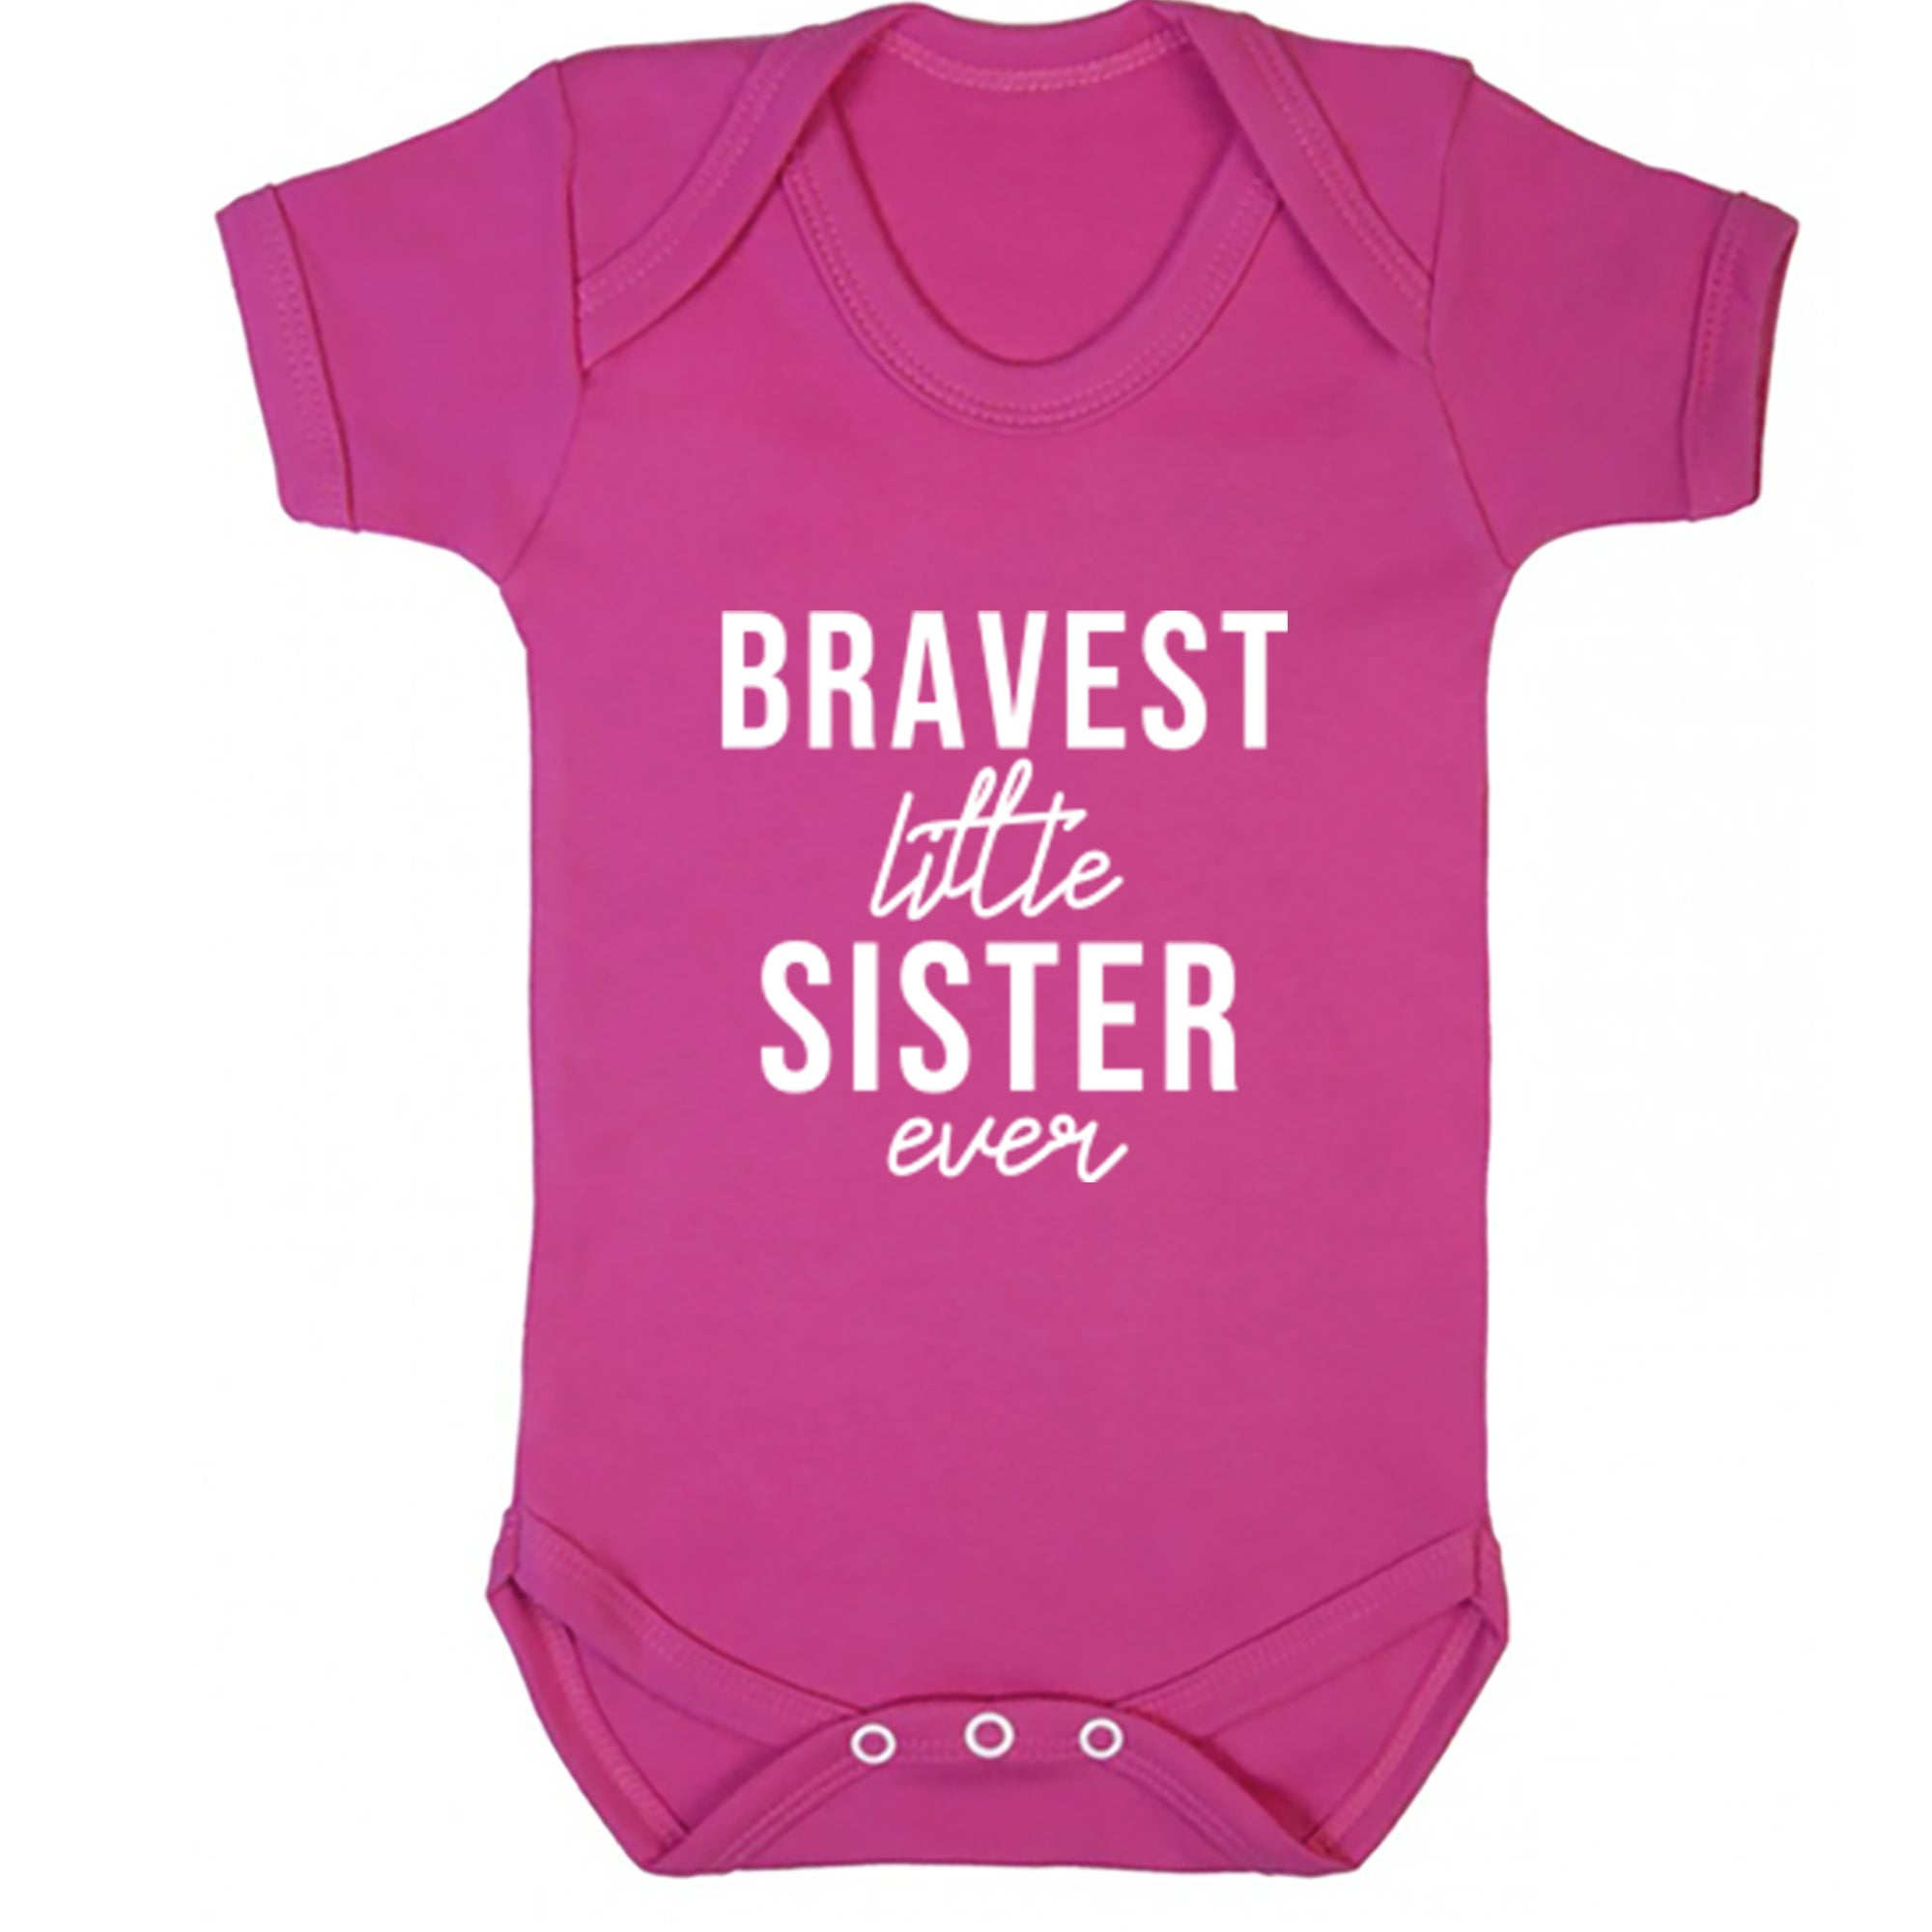 Bravest Little Sister Ever Baby Vest S0508 - Illustrated Identity Ltd.